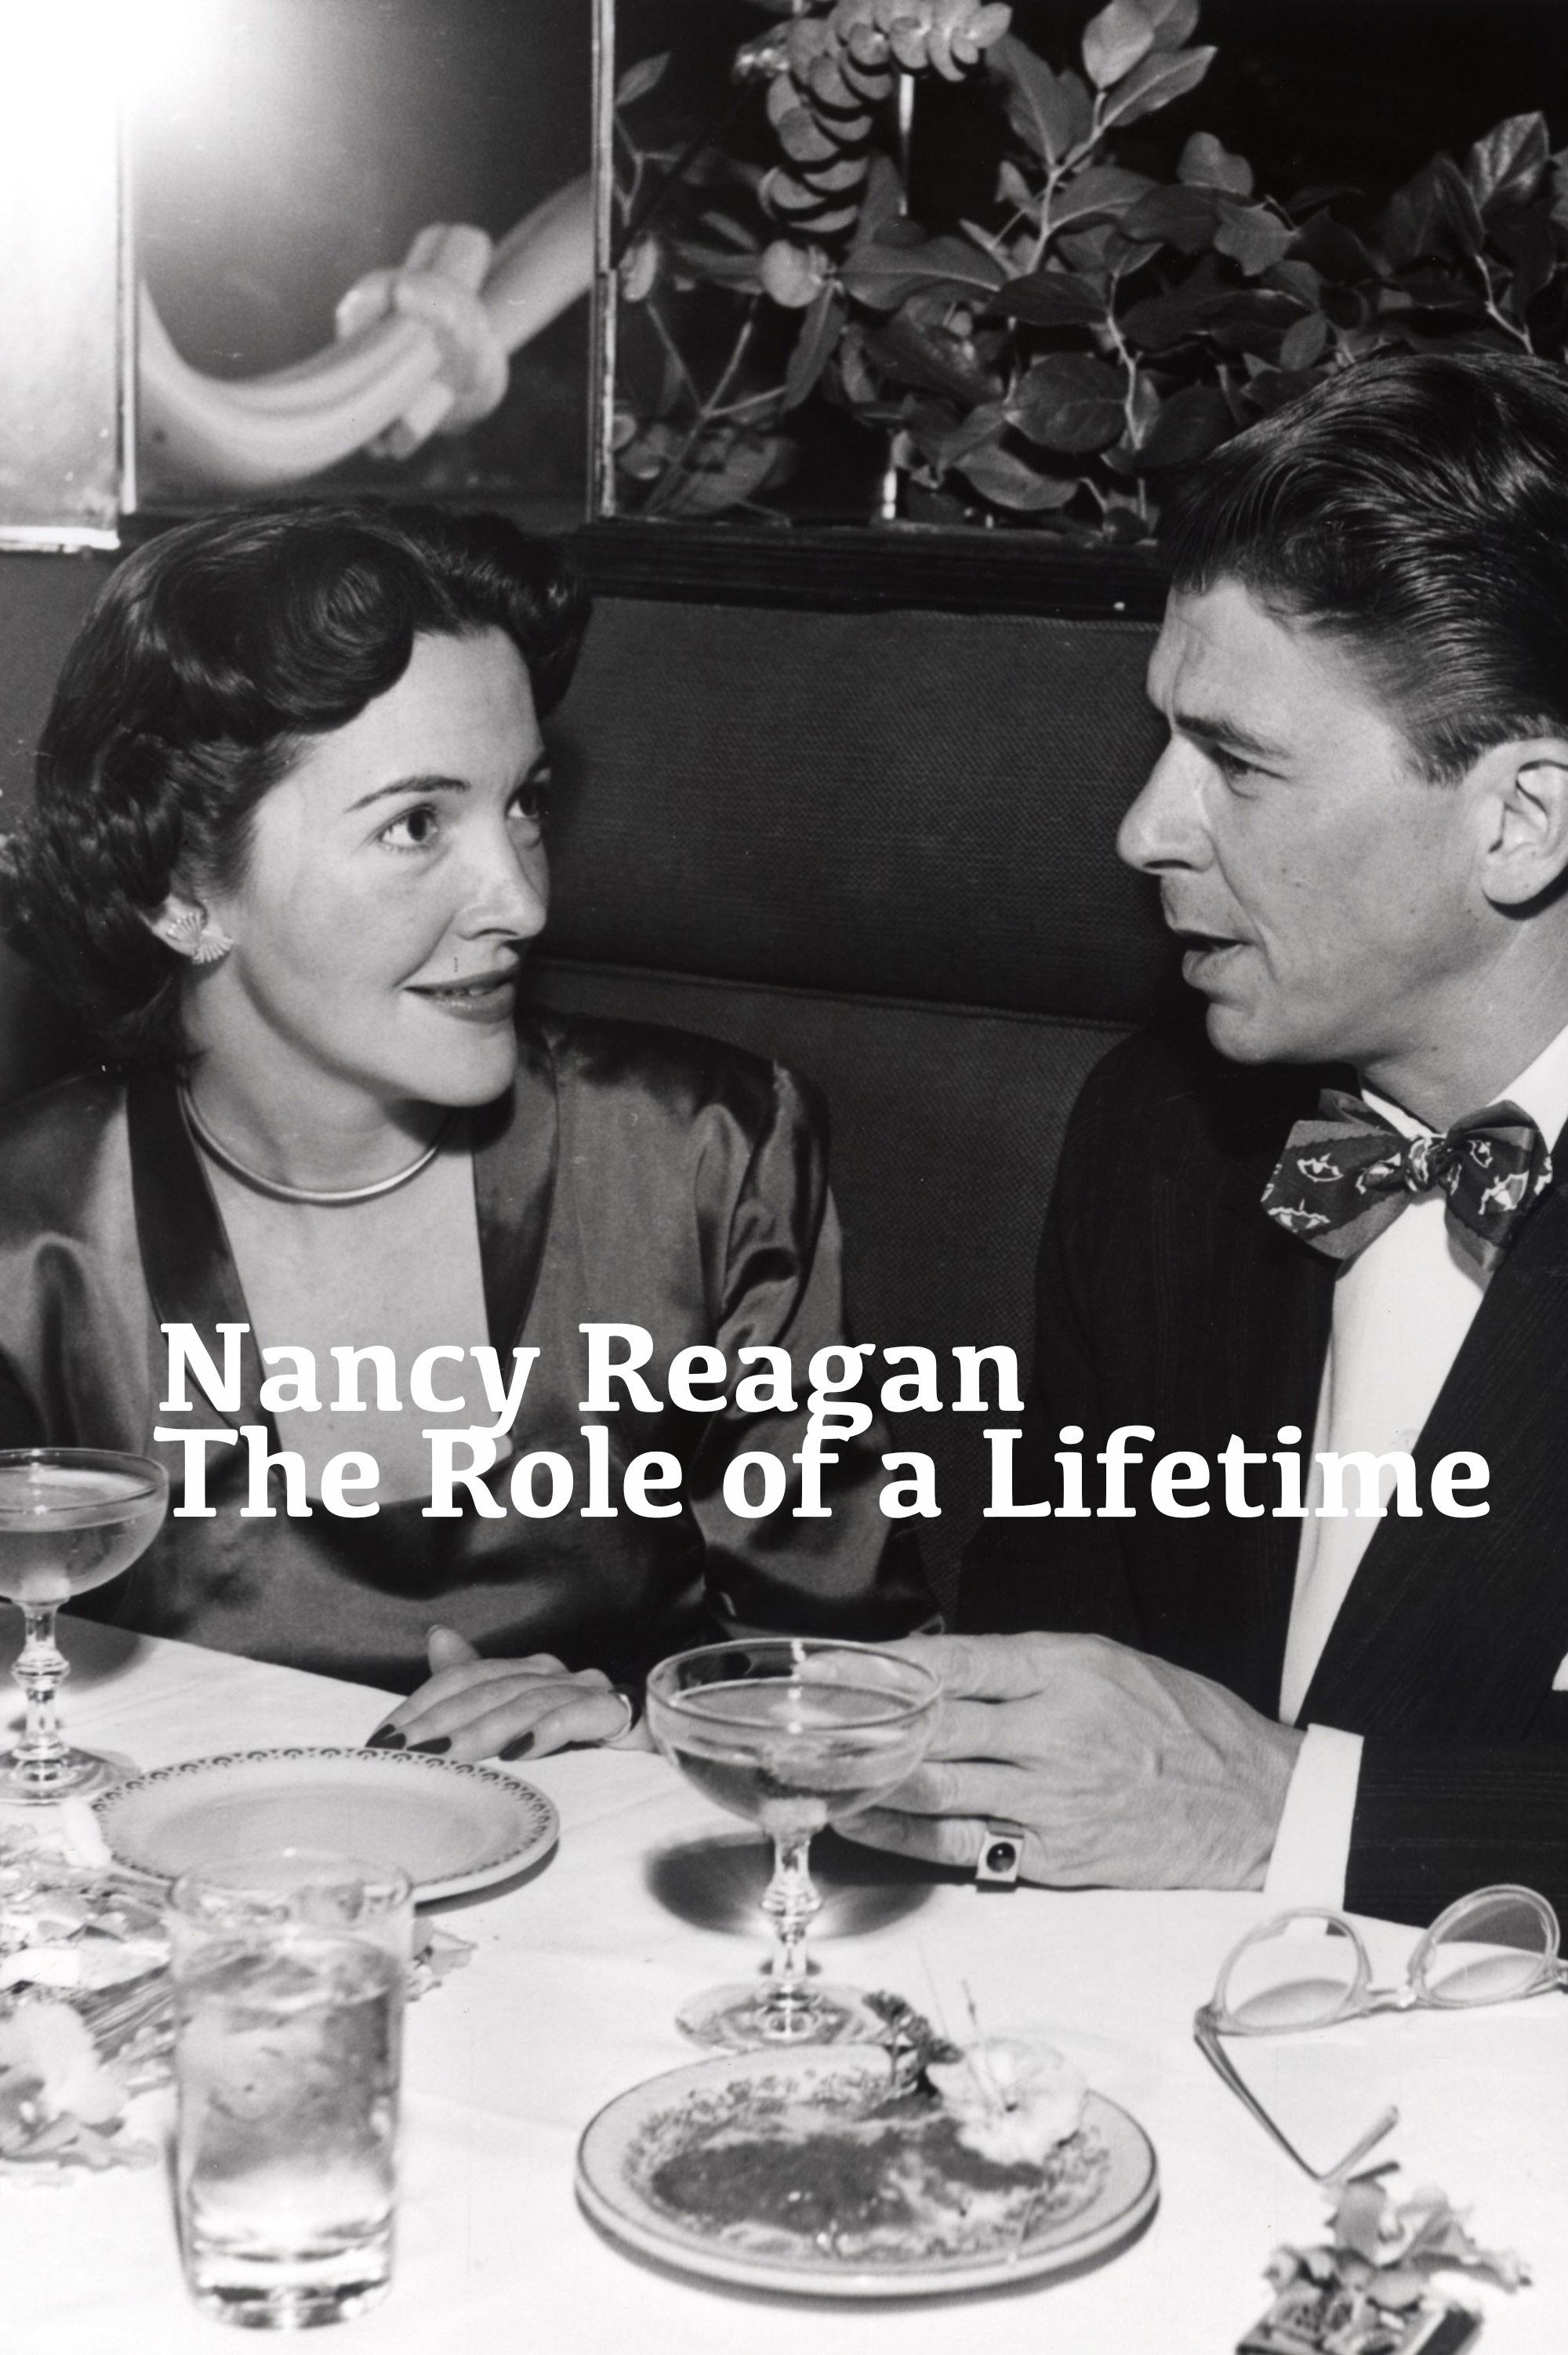 Nancy Reagan on FREECABLE TV